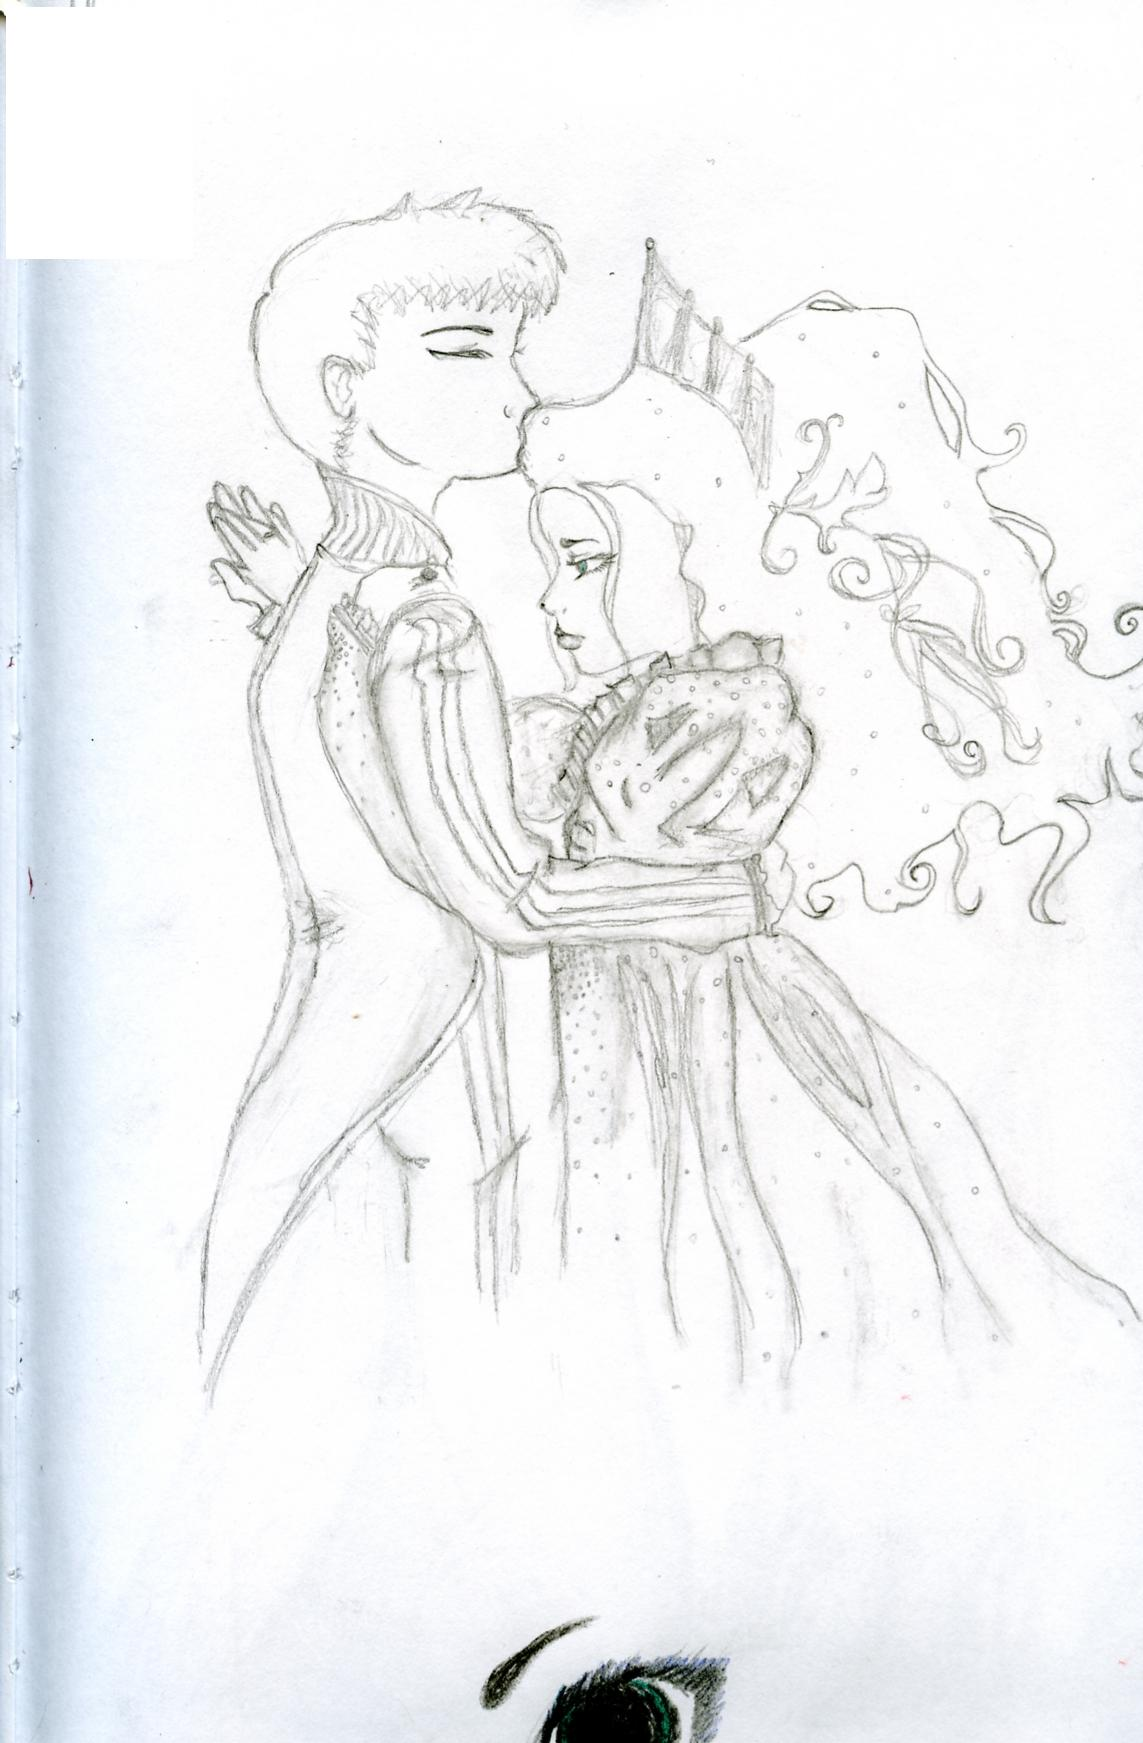 Dinah and Prince from Bizenghast by ClerksX